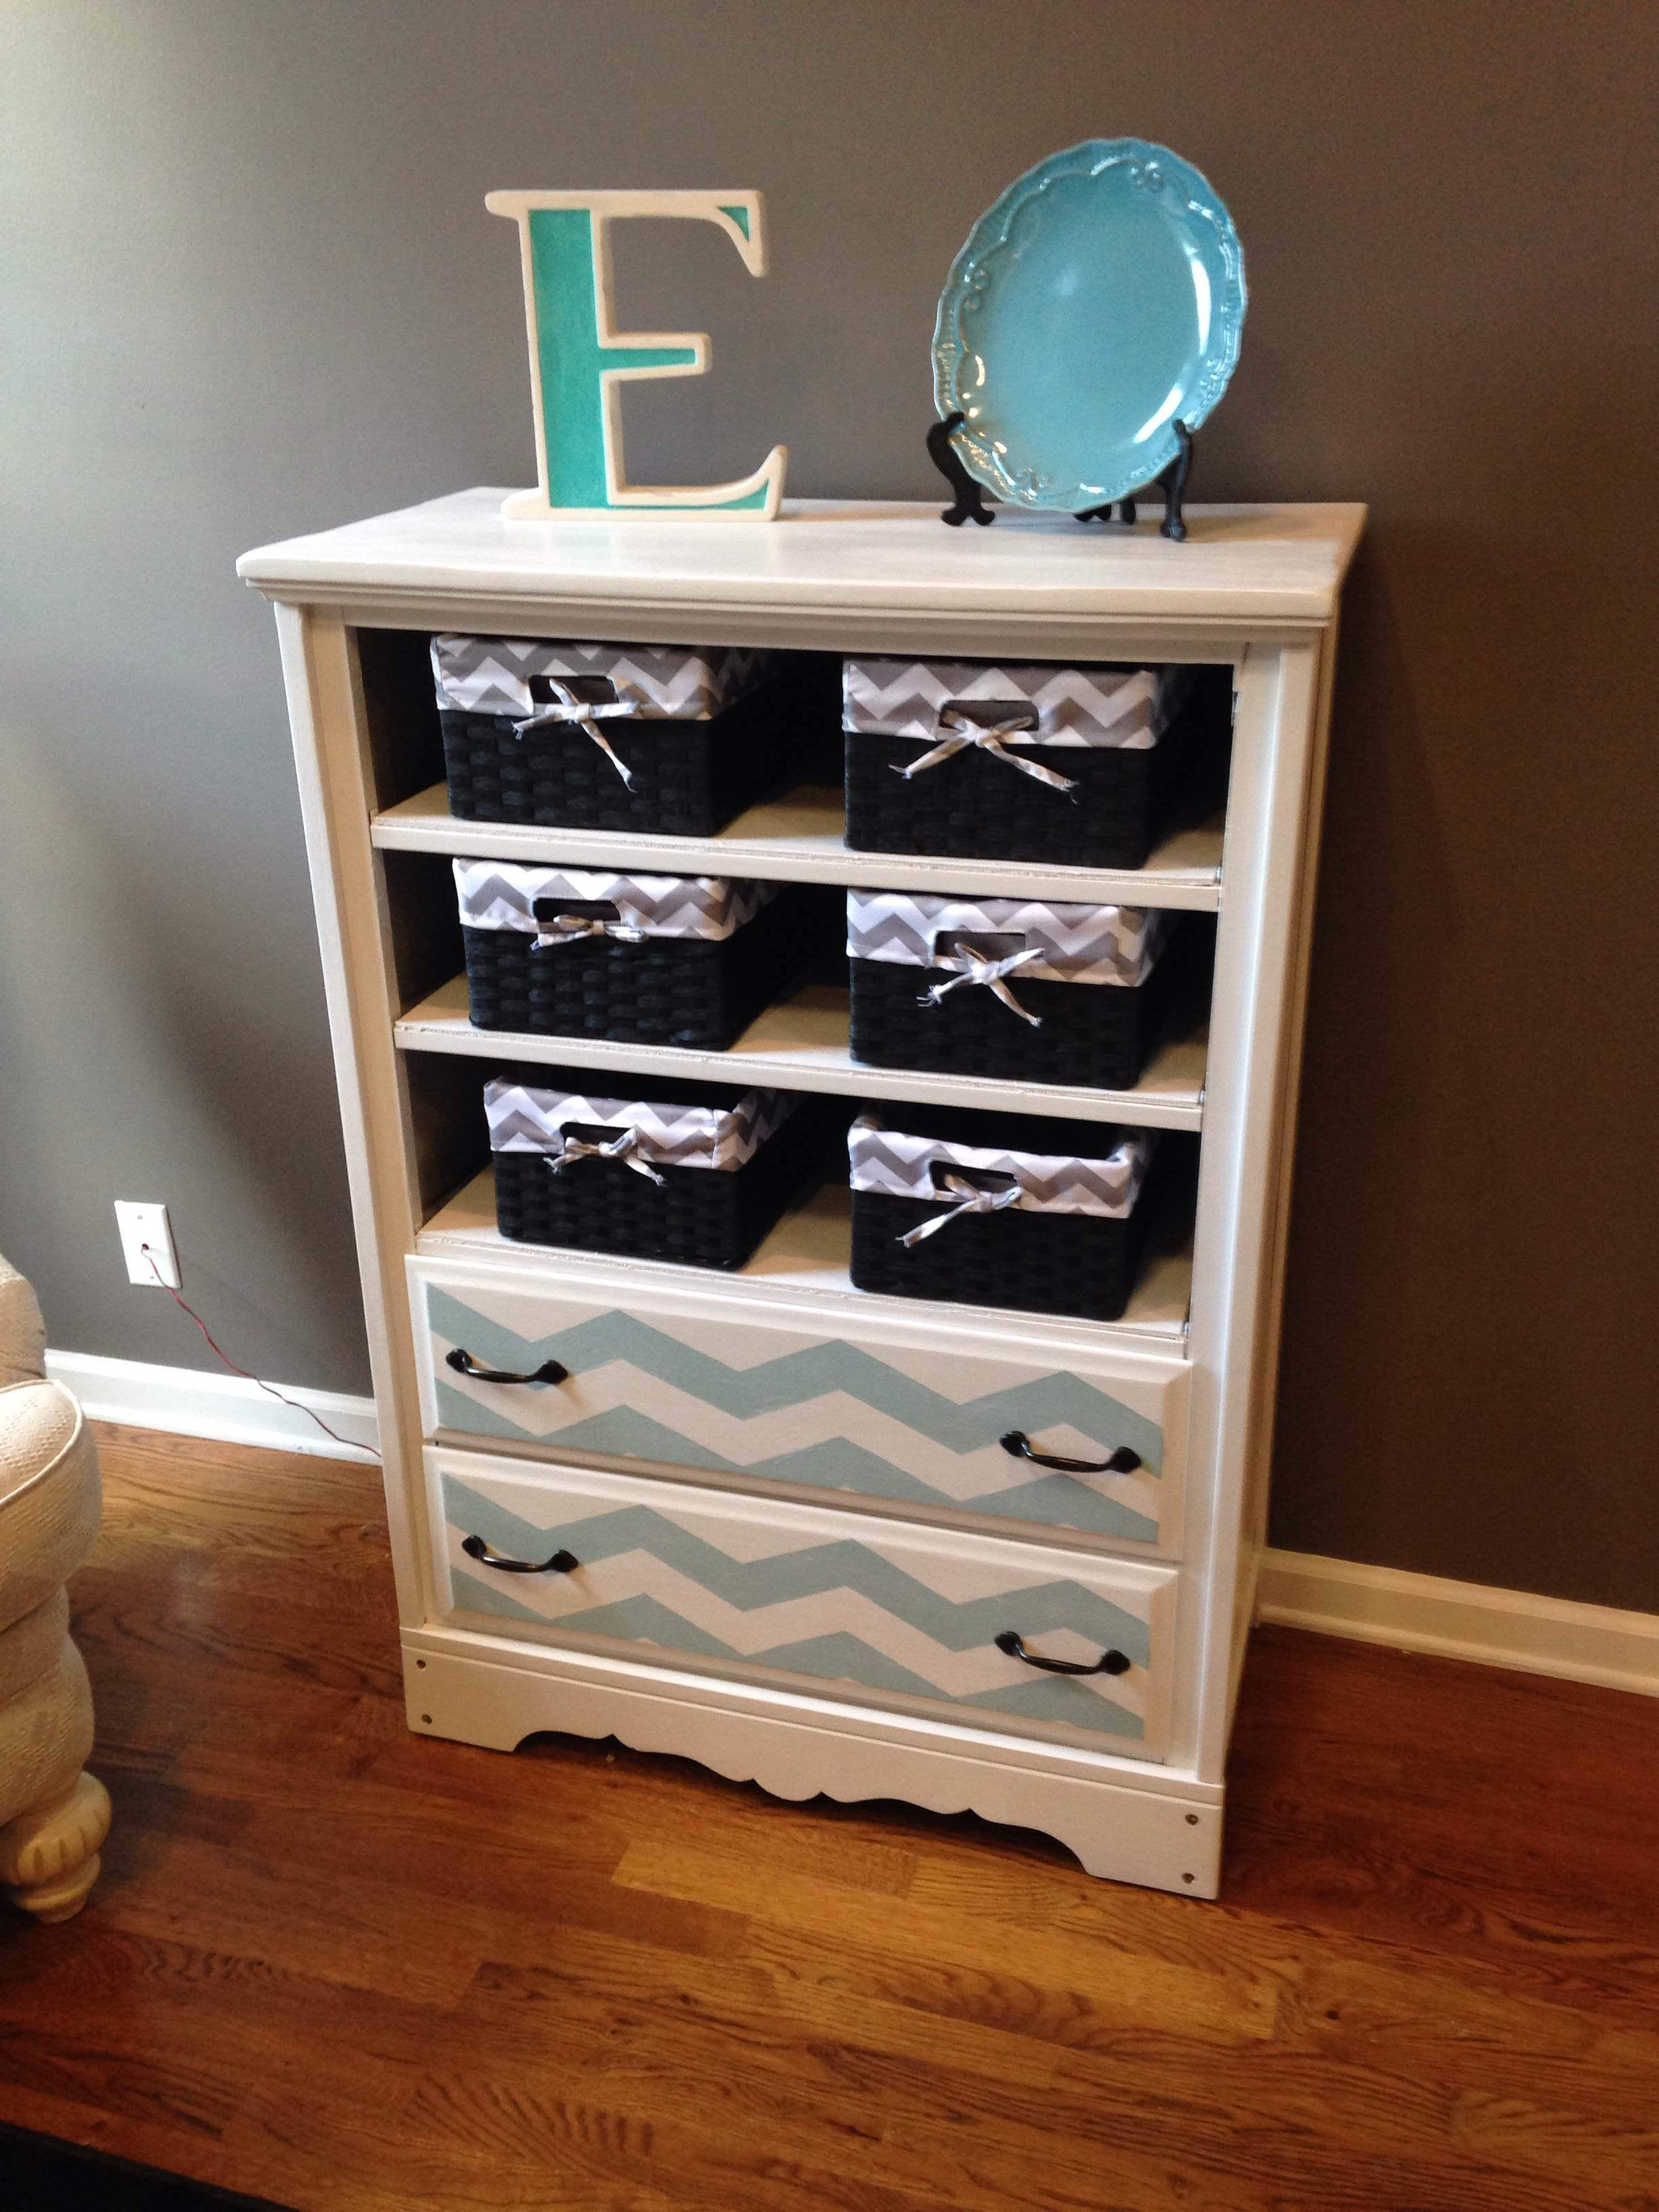 How to make dresser drawers - Diy Dresser To Storage Pennywise Cook